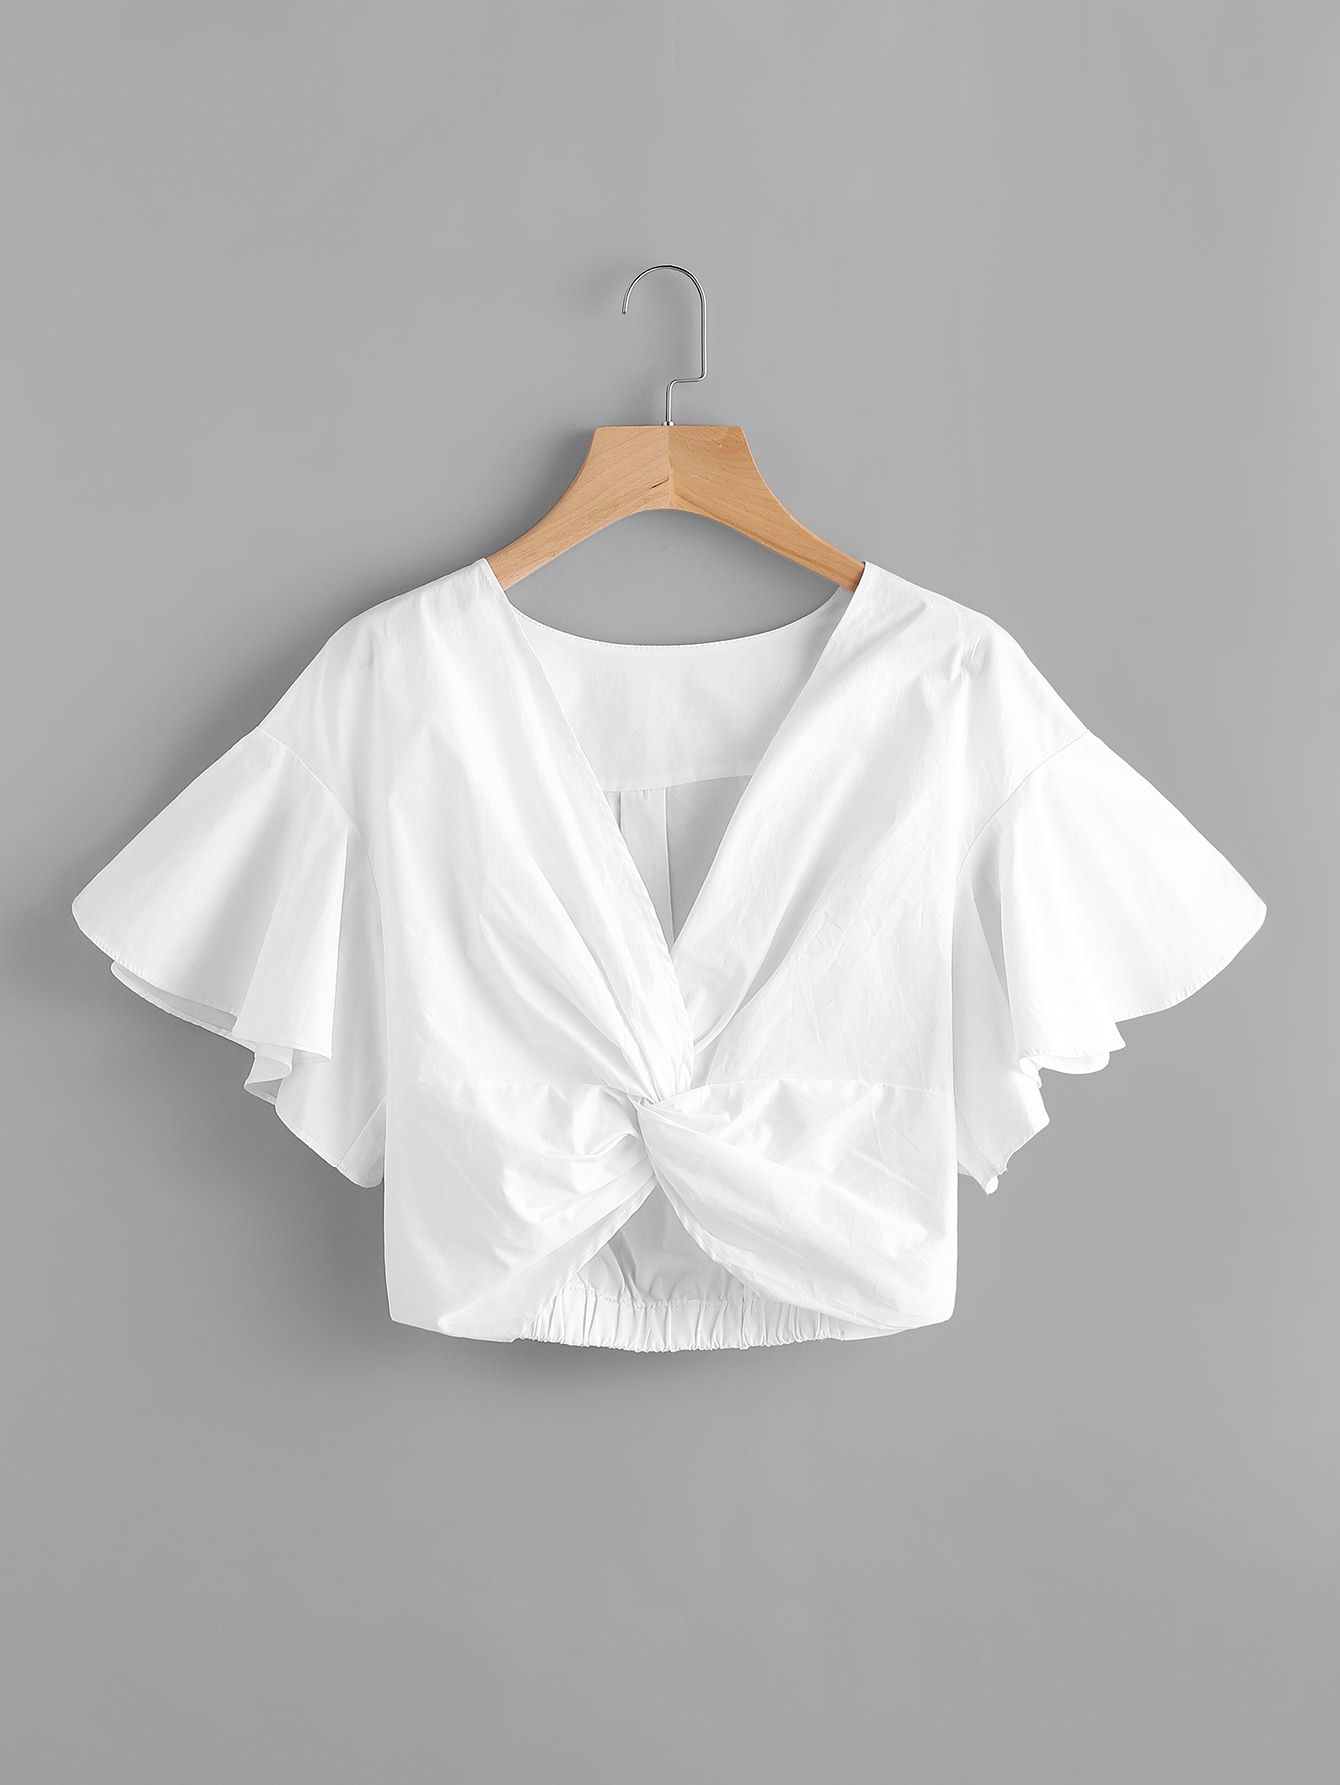 43311730e9bff Shop V-neckline Twist Knot Front Crop Top online. SheIn offers V-neckline  Twist Knot Front Crop Top   more to fit your fashionable needs.